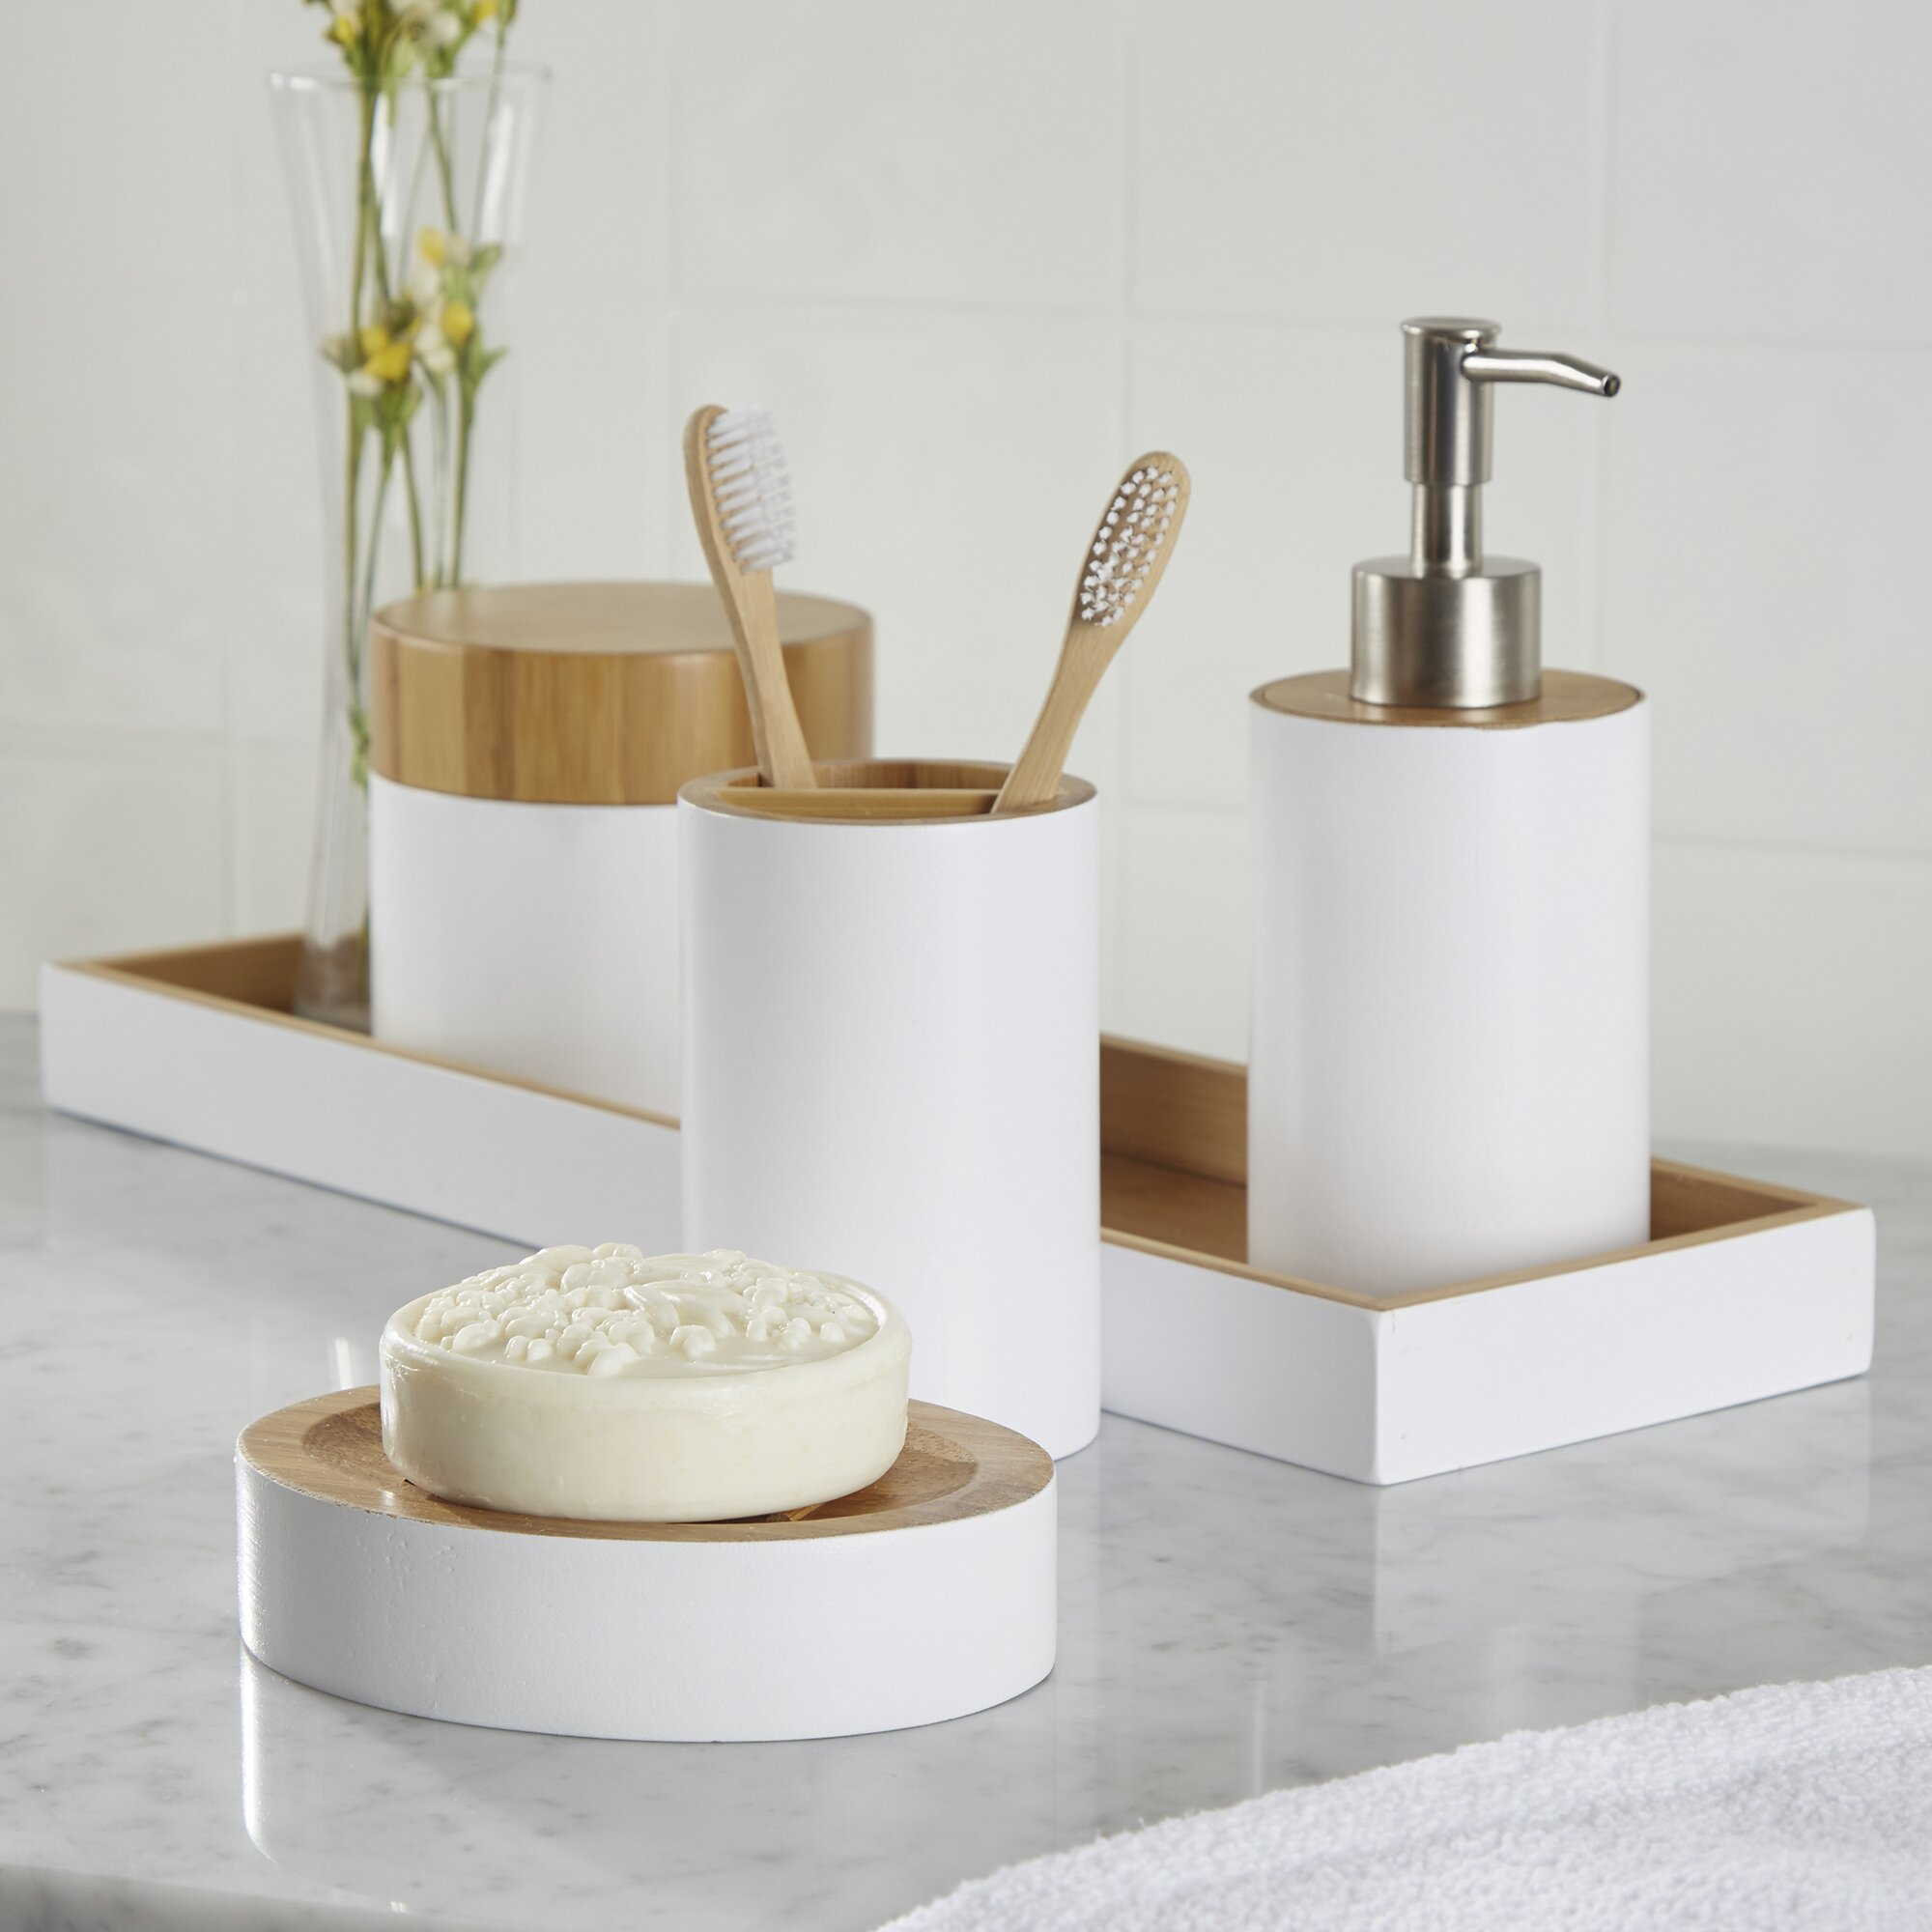 Rousseau 6 piece bathroom accessory set reviews allmodern for All bathroom accessories